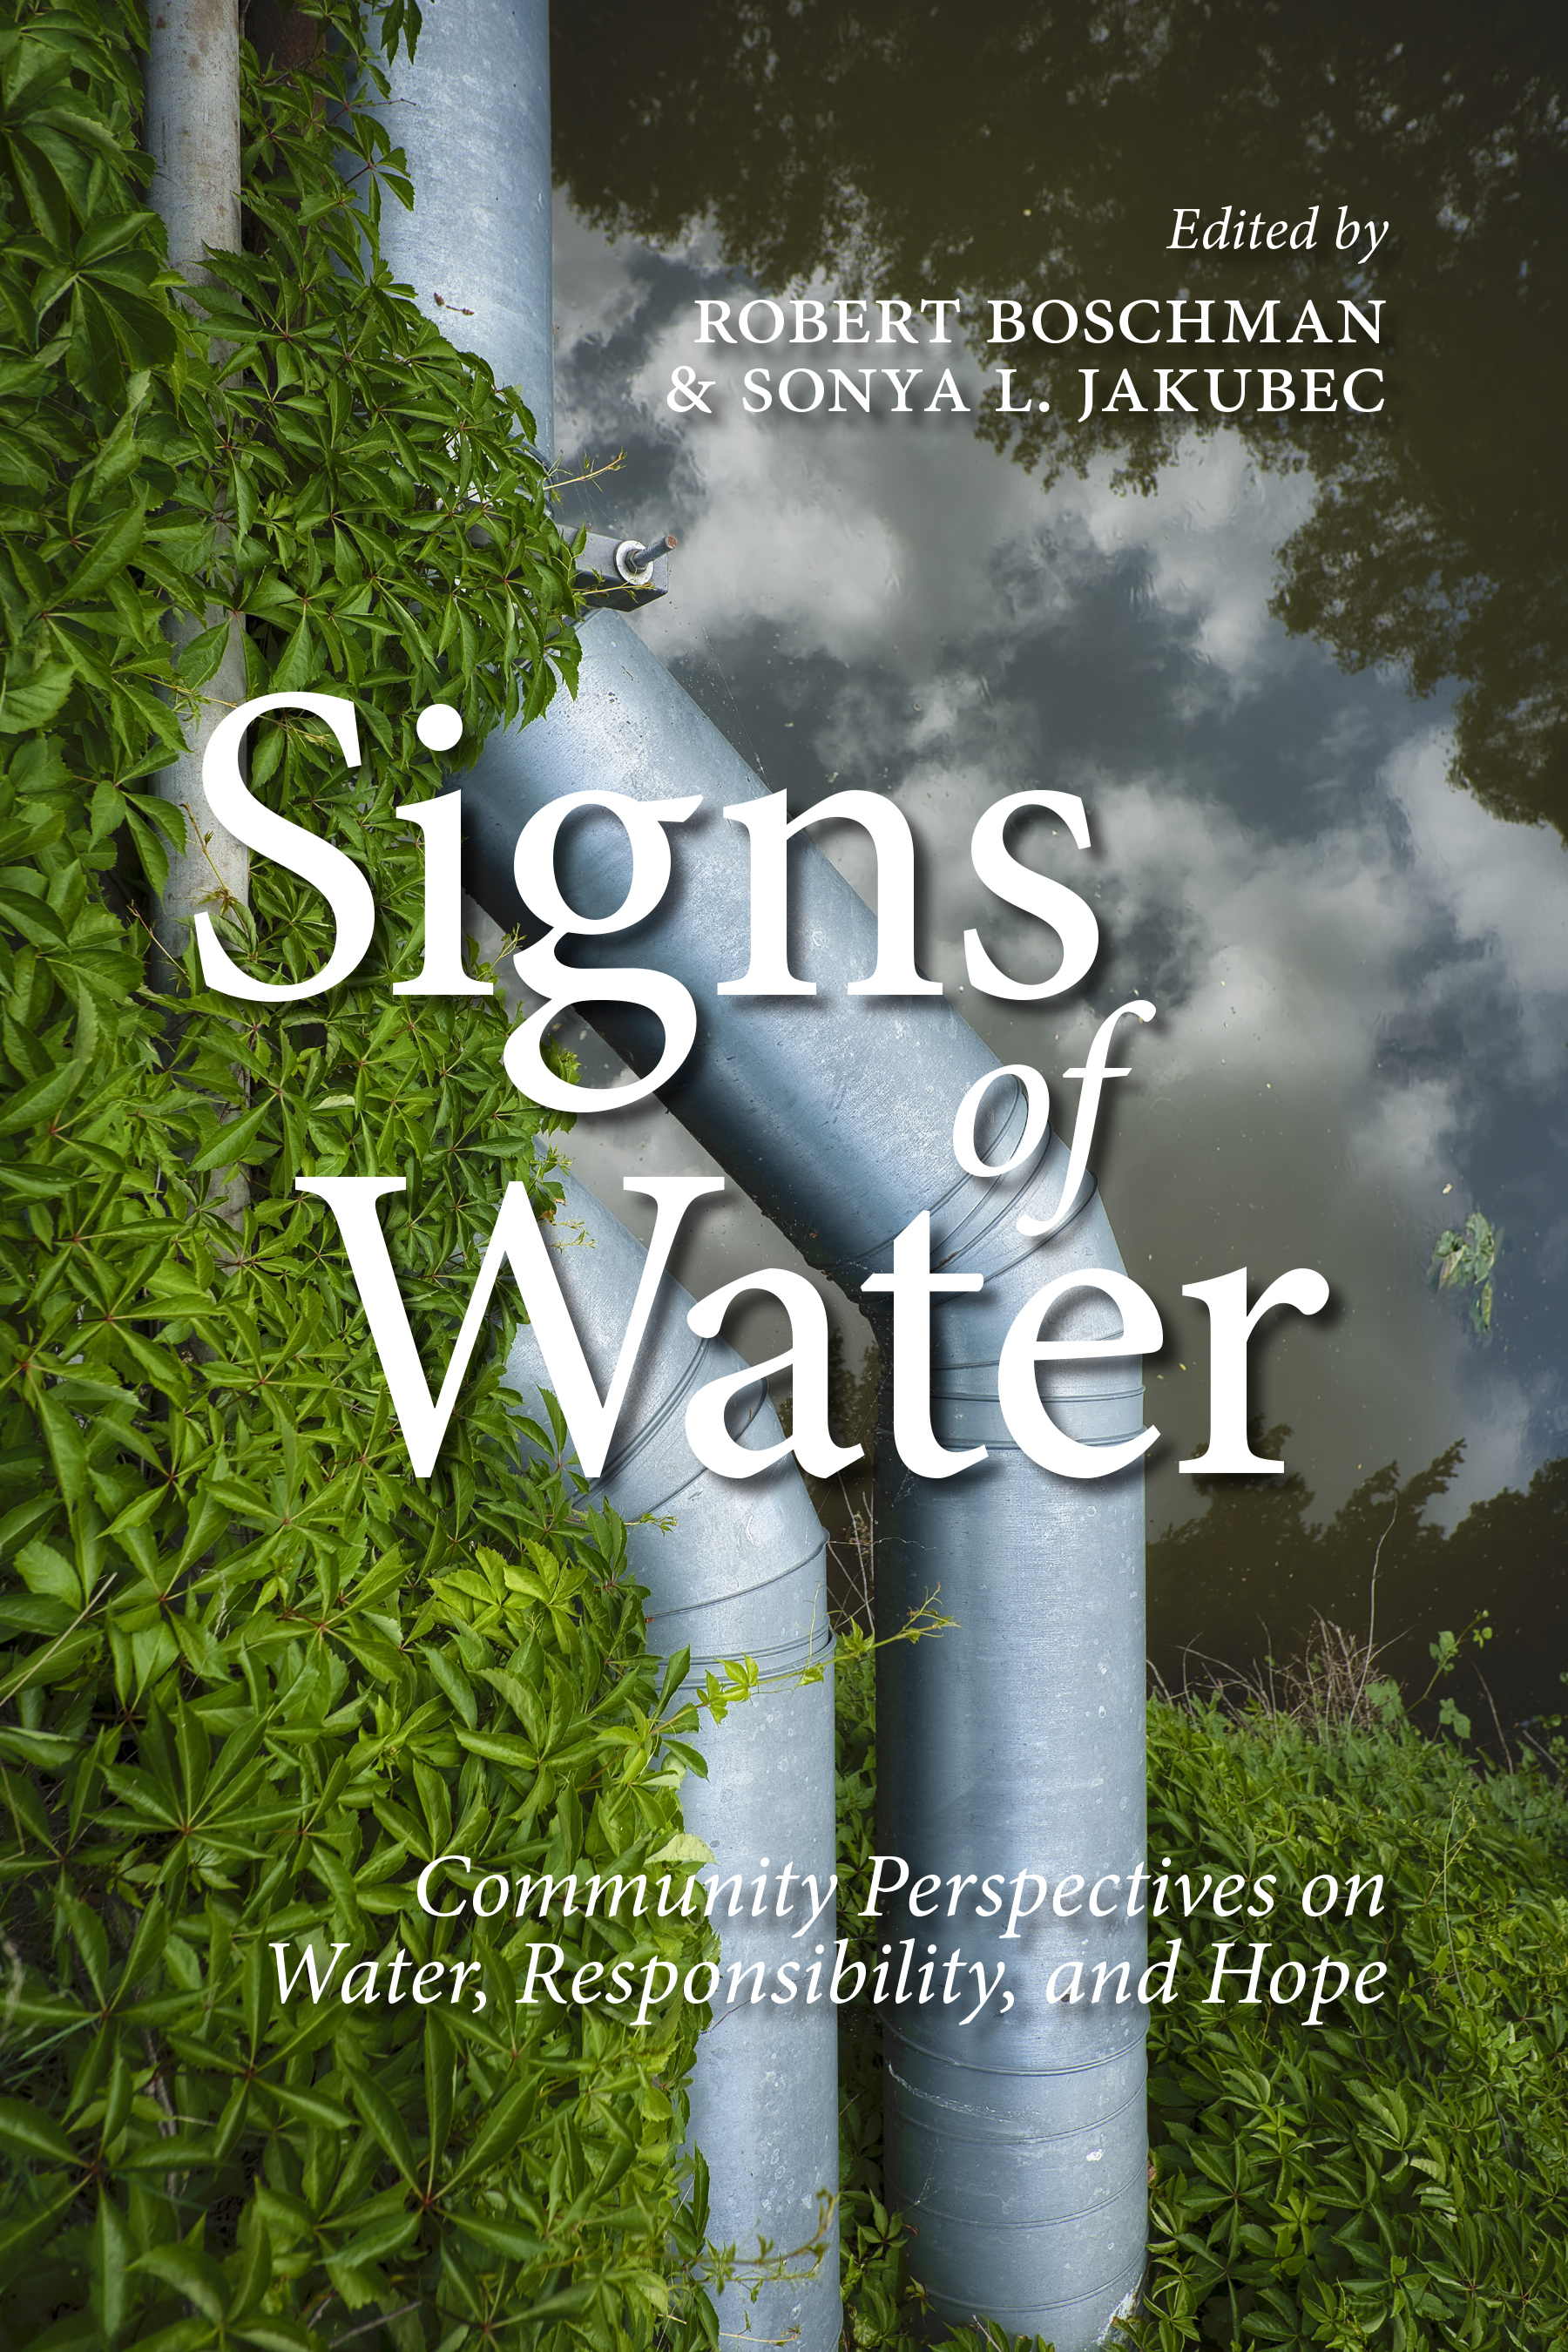 Book Cover Image for: Signs of Water: Community Perspectives on Water, Responsibility, and Hope